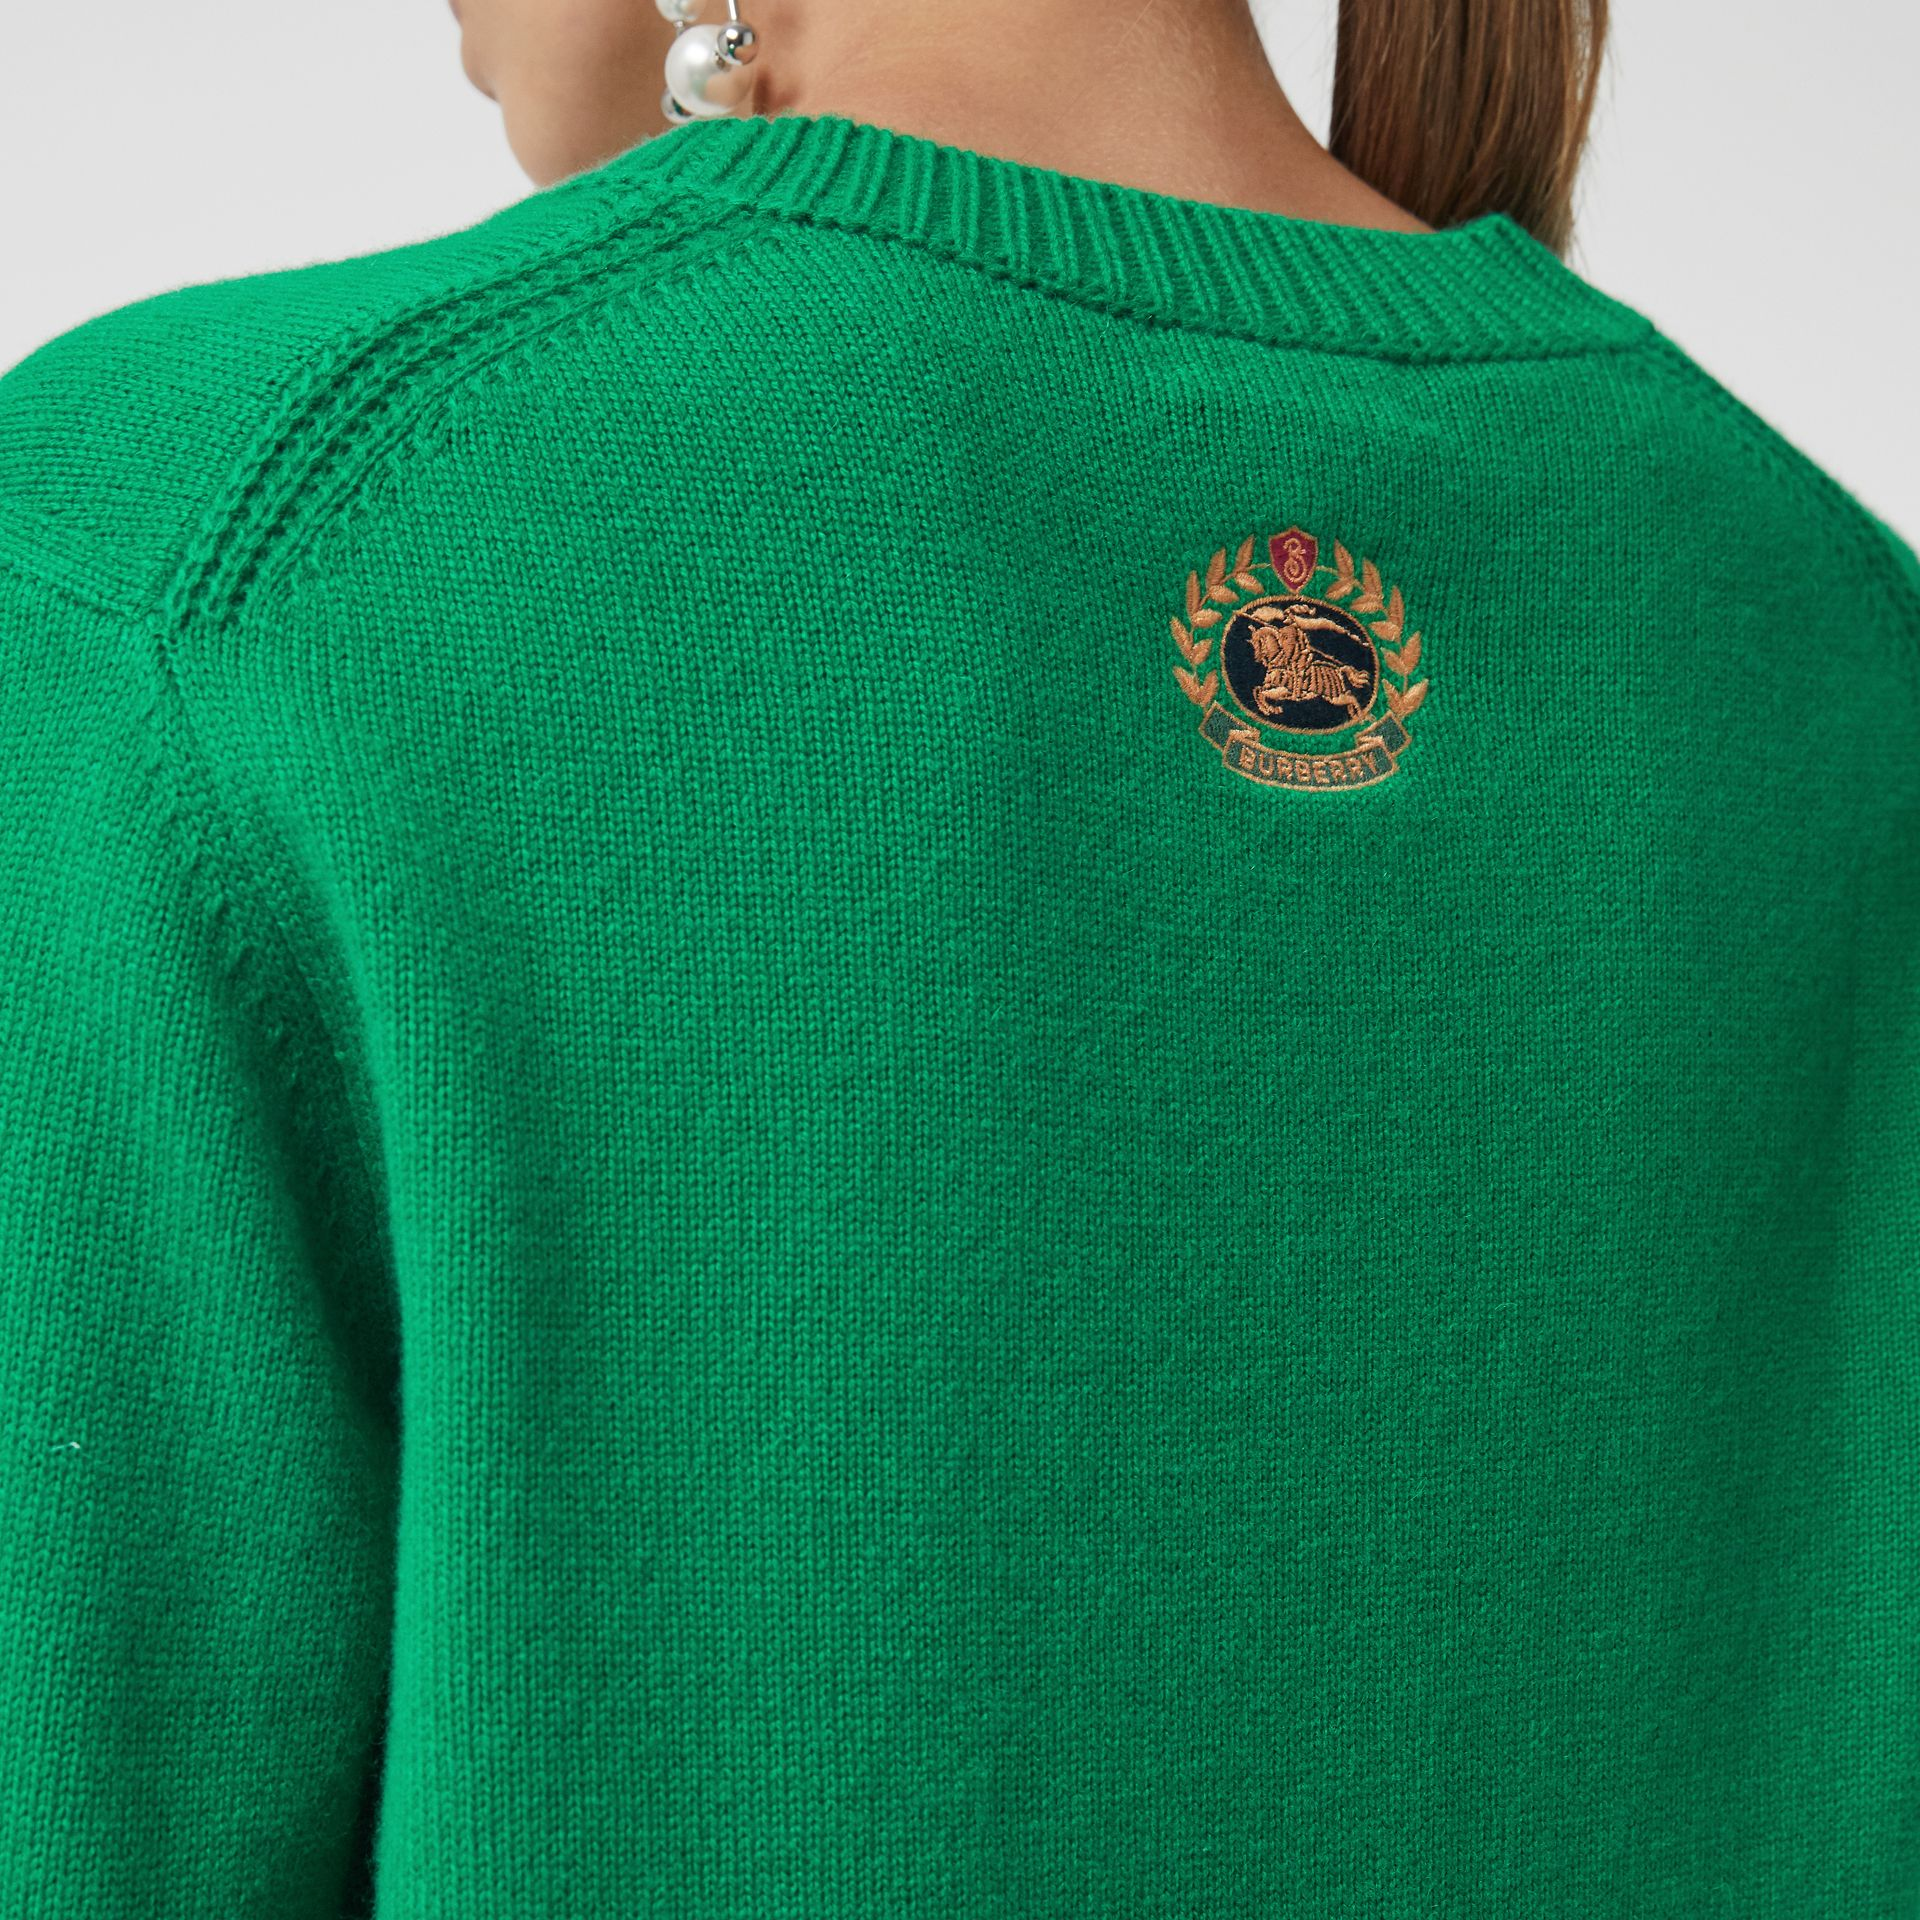 Archive Logo Appliqué Cashmere Sweater in Vibrant Green - Women | Burberry United States - gallery image 1